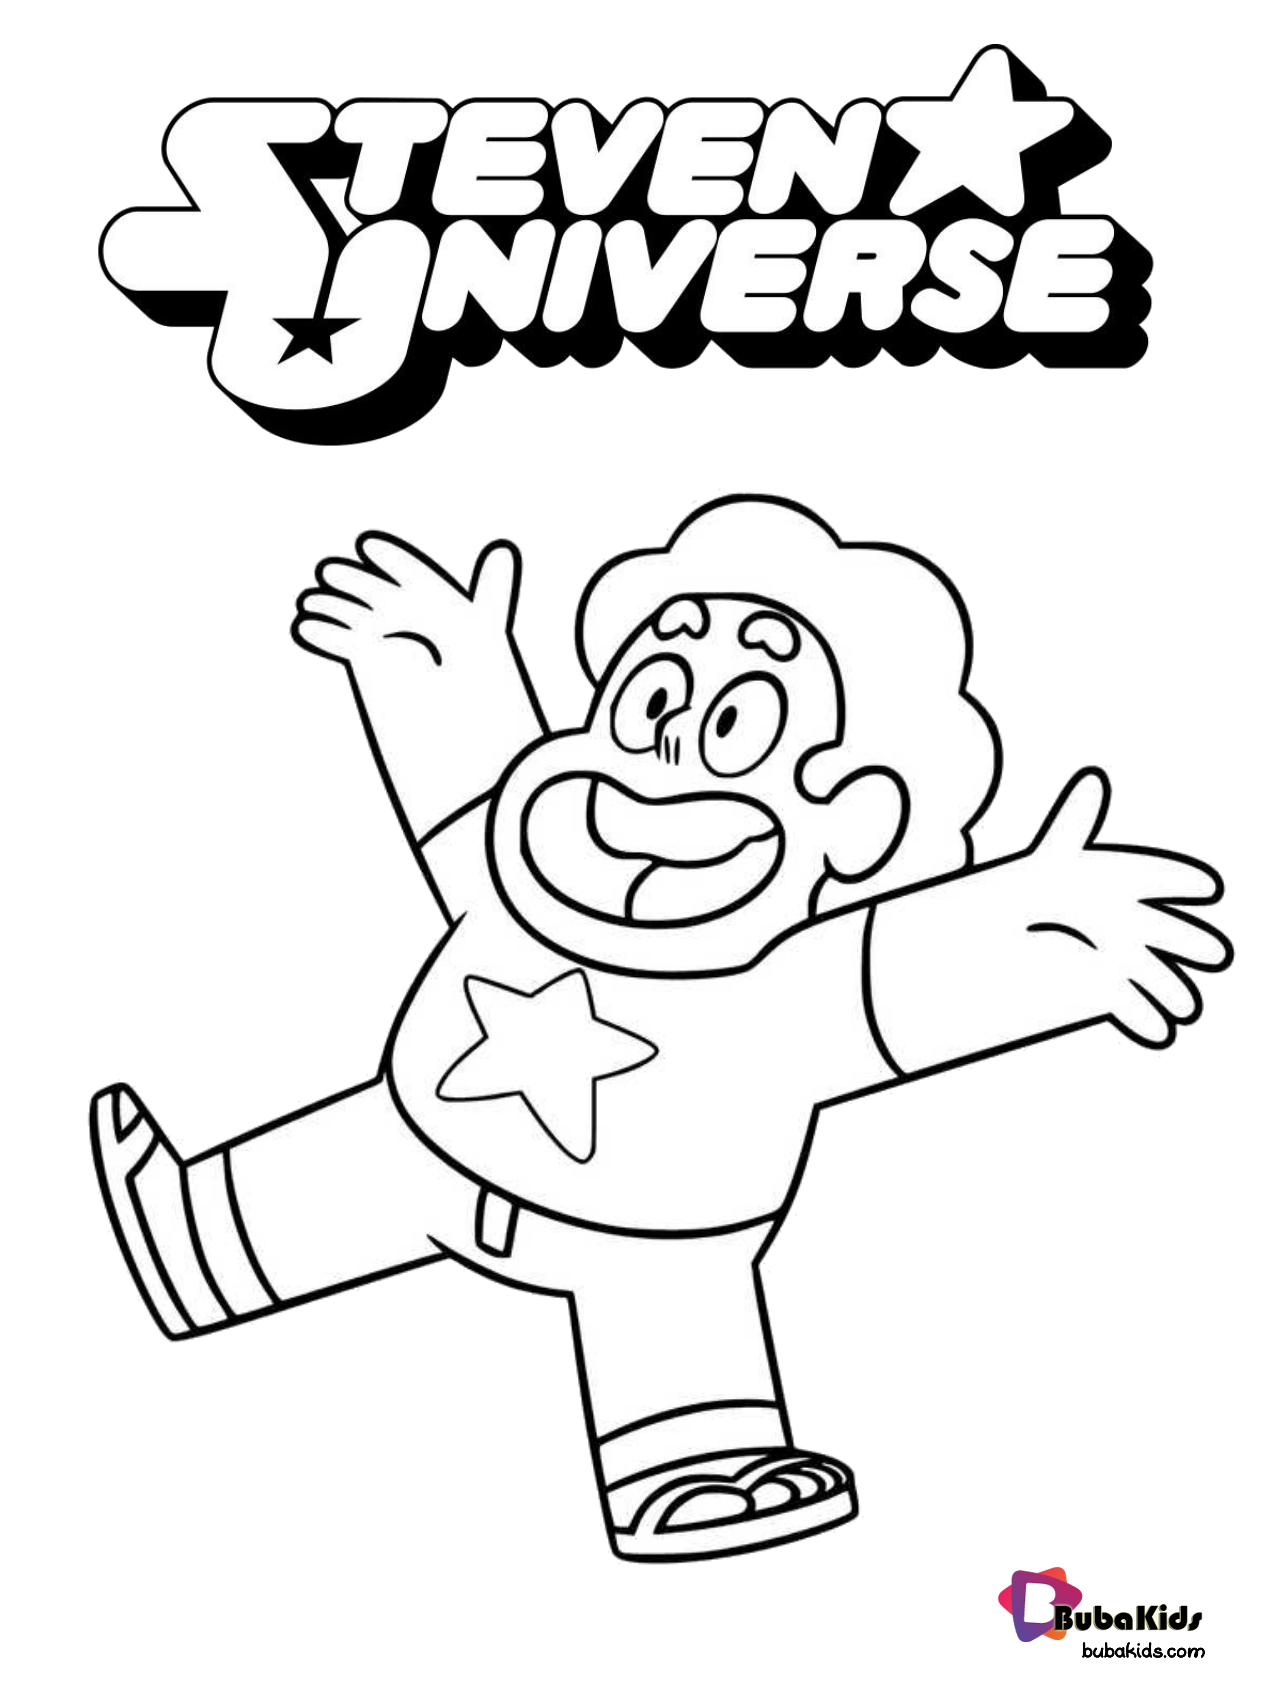 Steven Universe coloring page. Collection of cartoon coloring